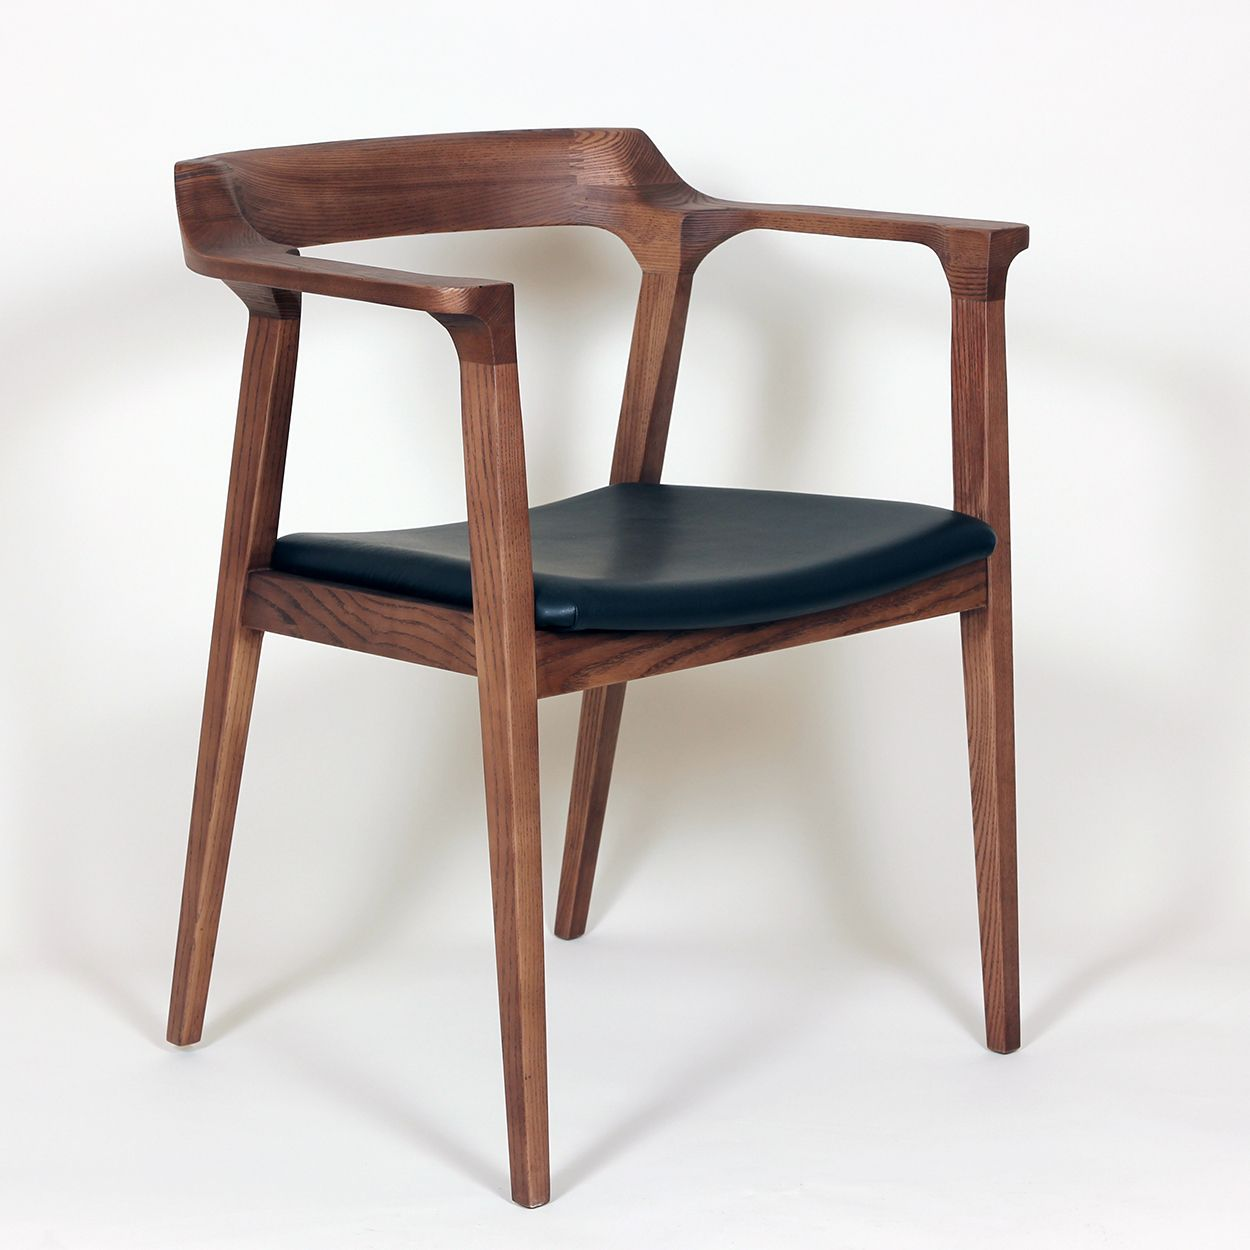 Modern wood chair with arms - The Djursholm Danish Modern Arm Chair Mid Century Modern Dining Chair Http